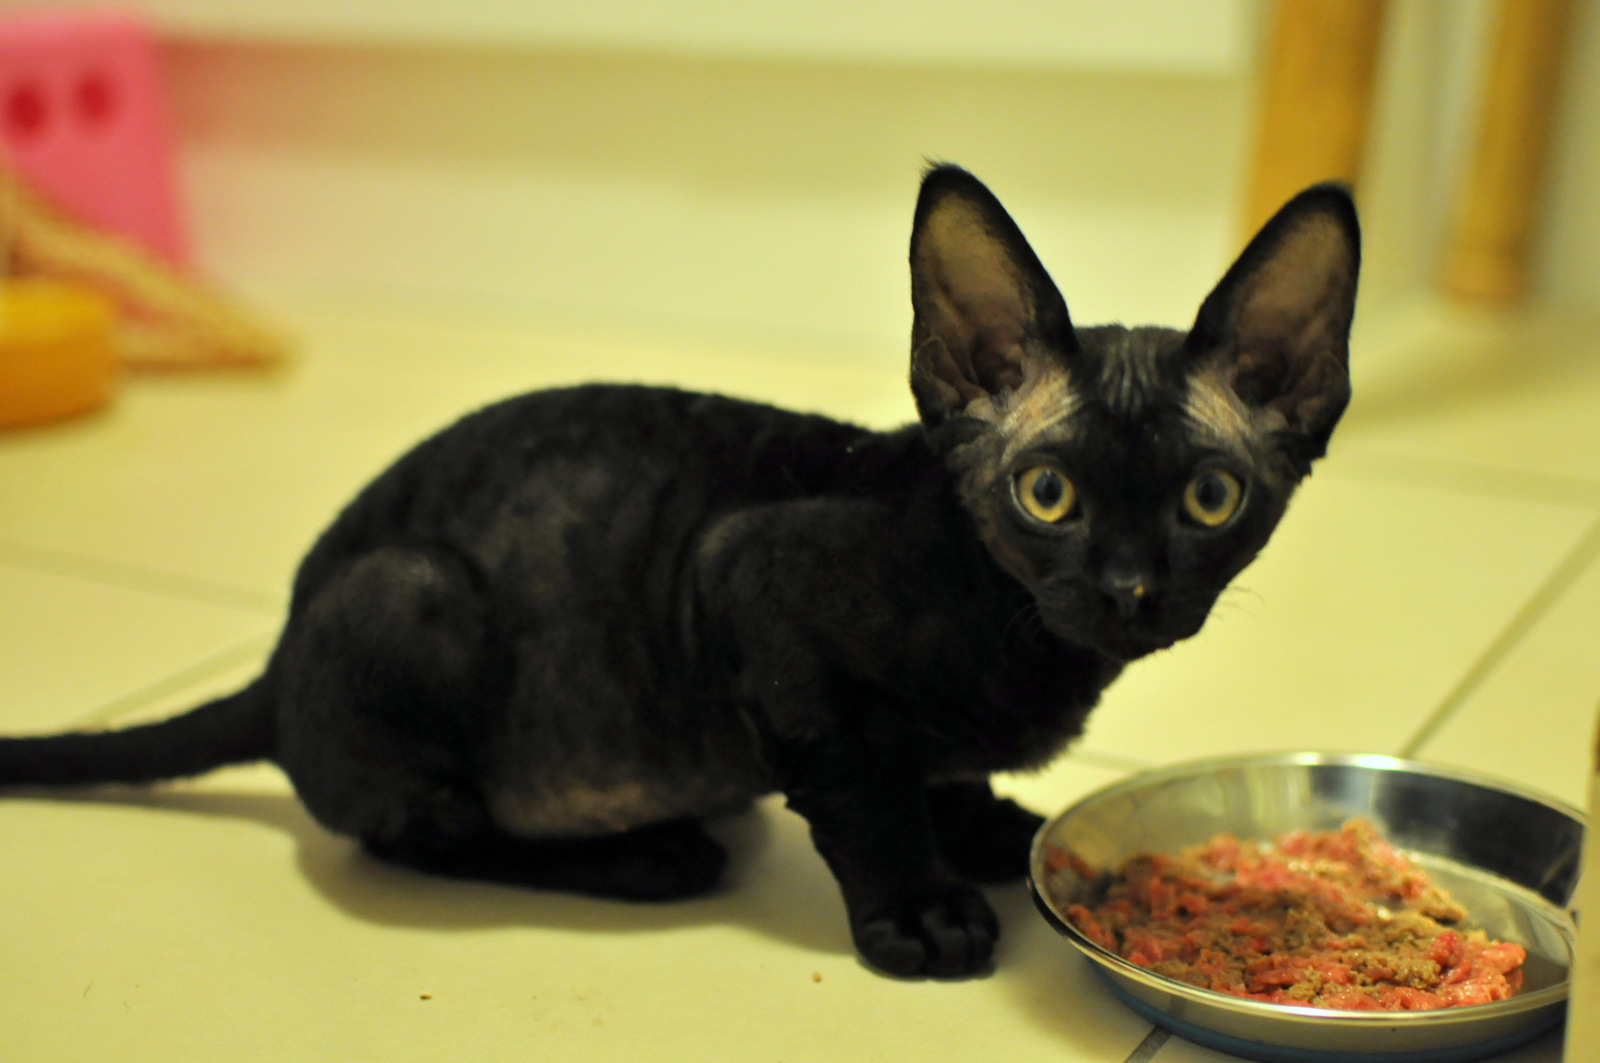 Kitten diet - how it should be